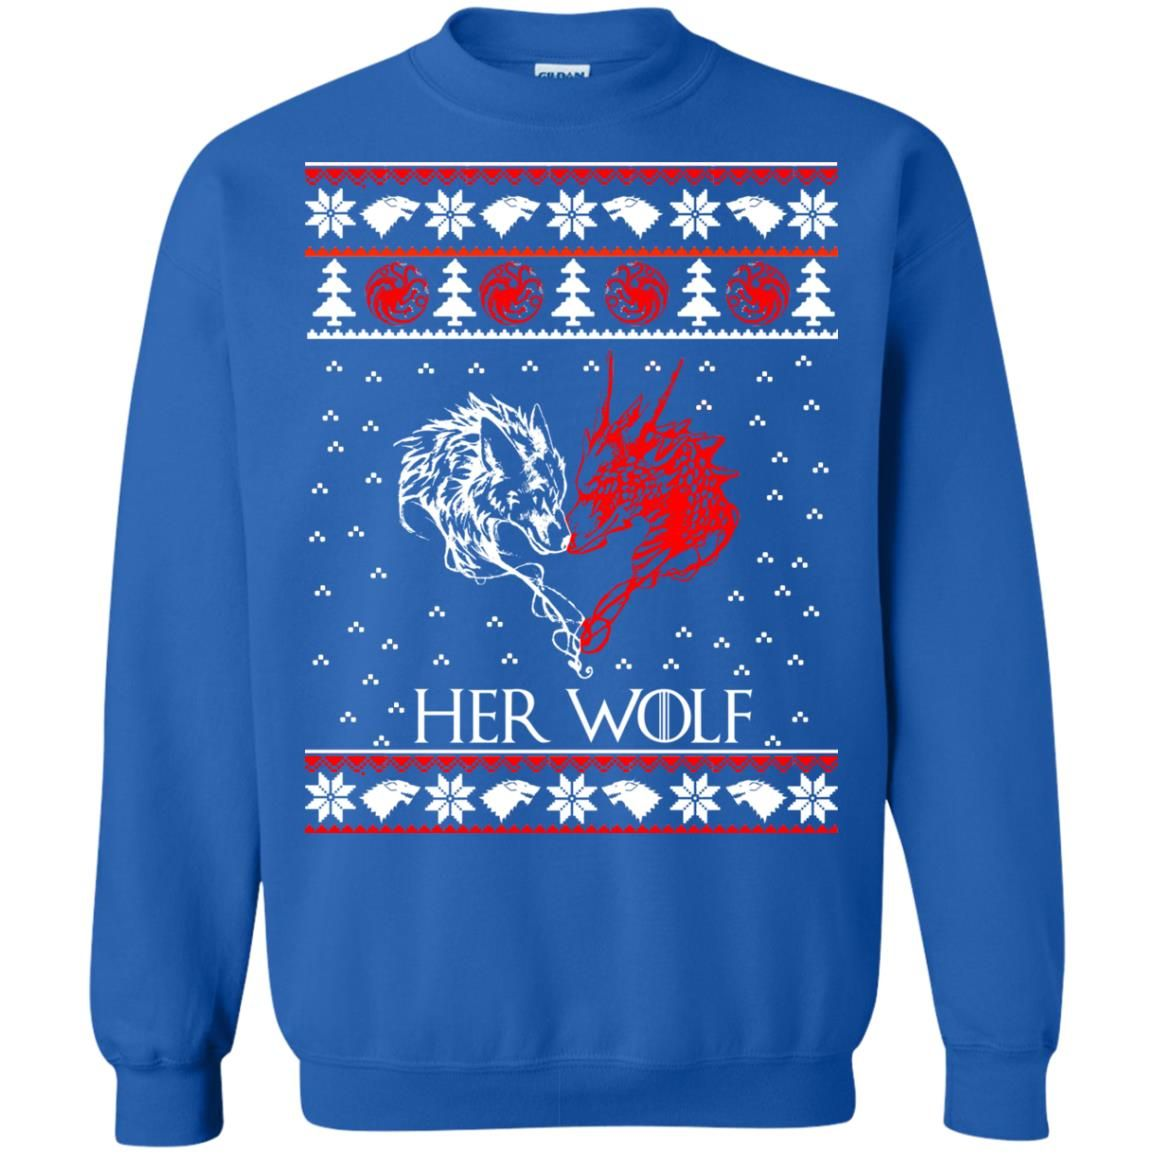 image 800 - Game of Thrones: Her Wolf Ugly Christmas Sweater, hoodie, shirt